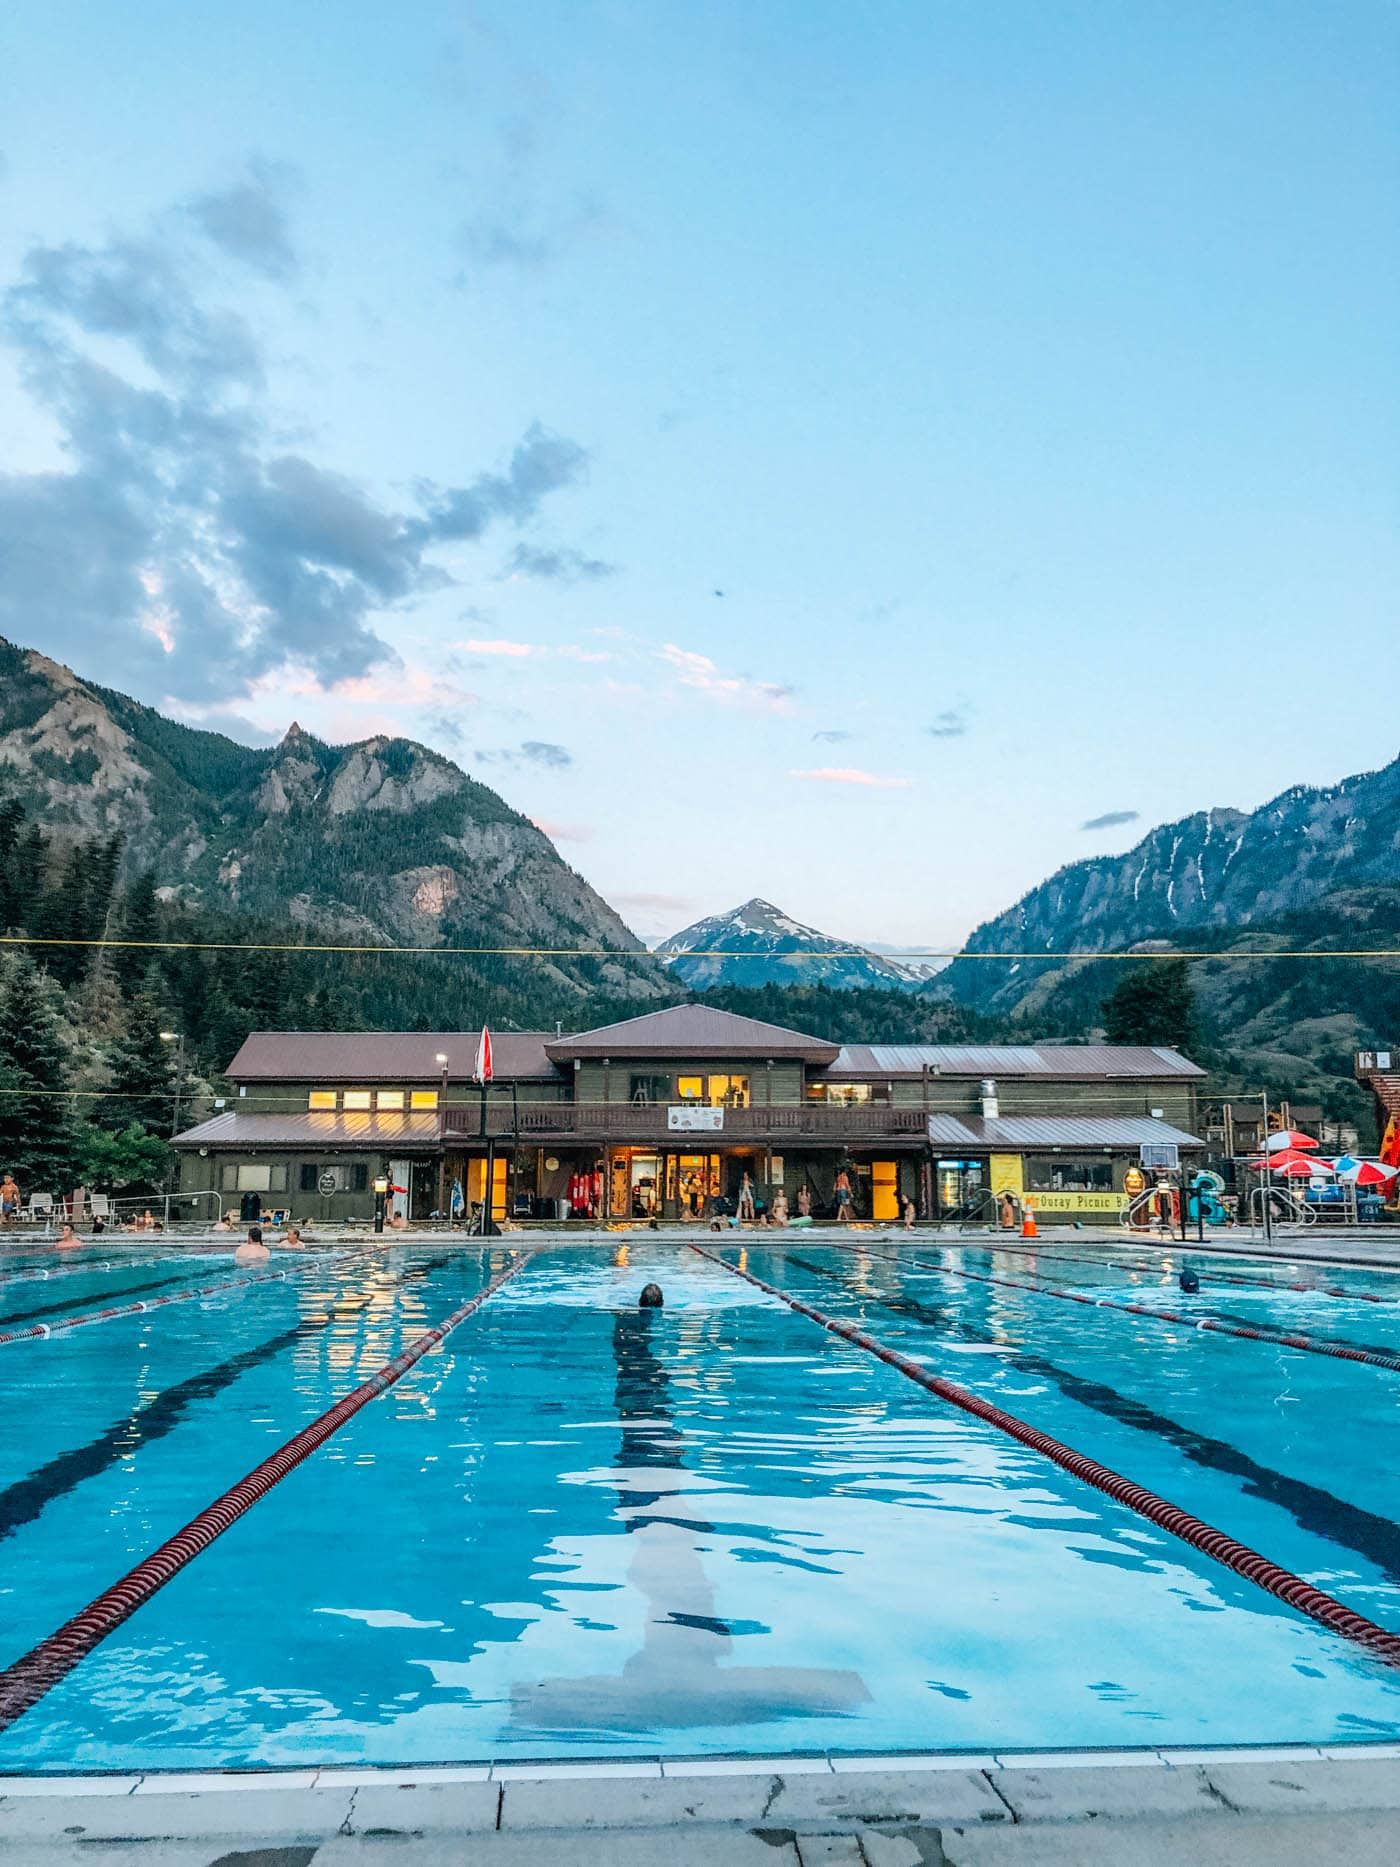 Ouray Hot Springs Swimming Pool with mountains in background